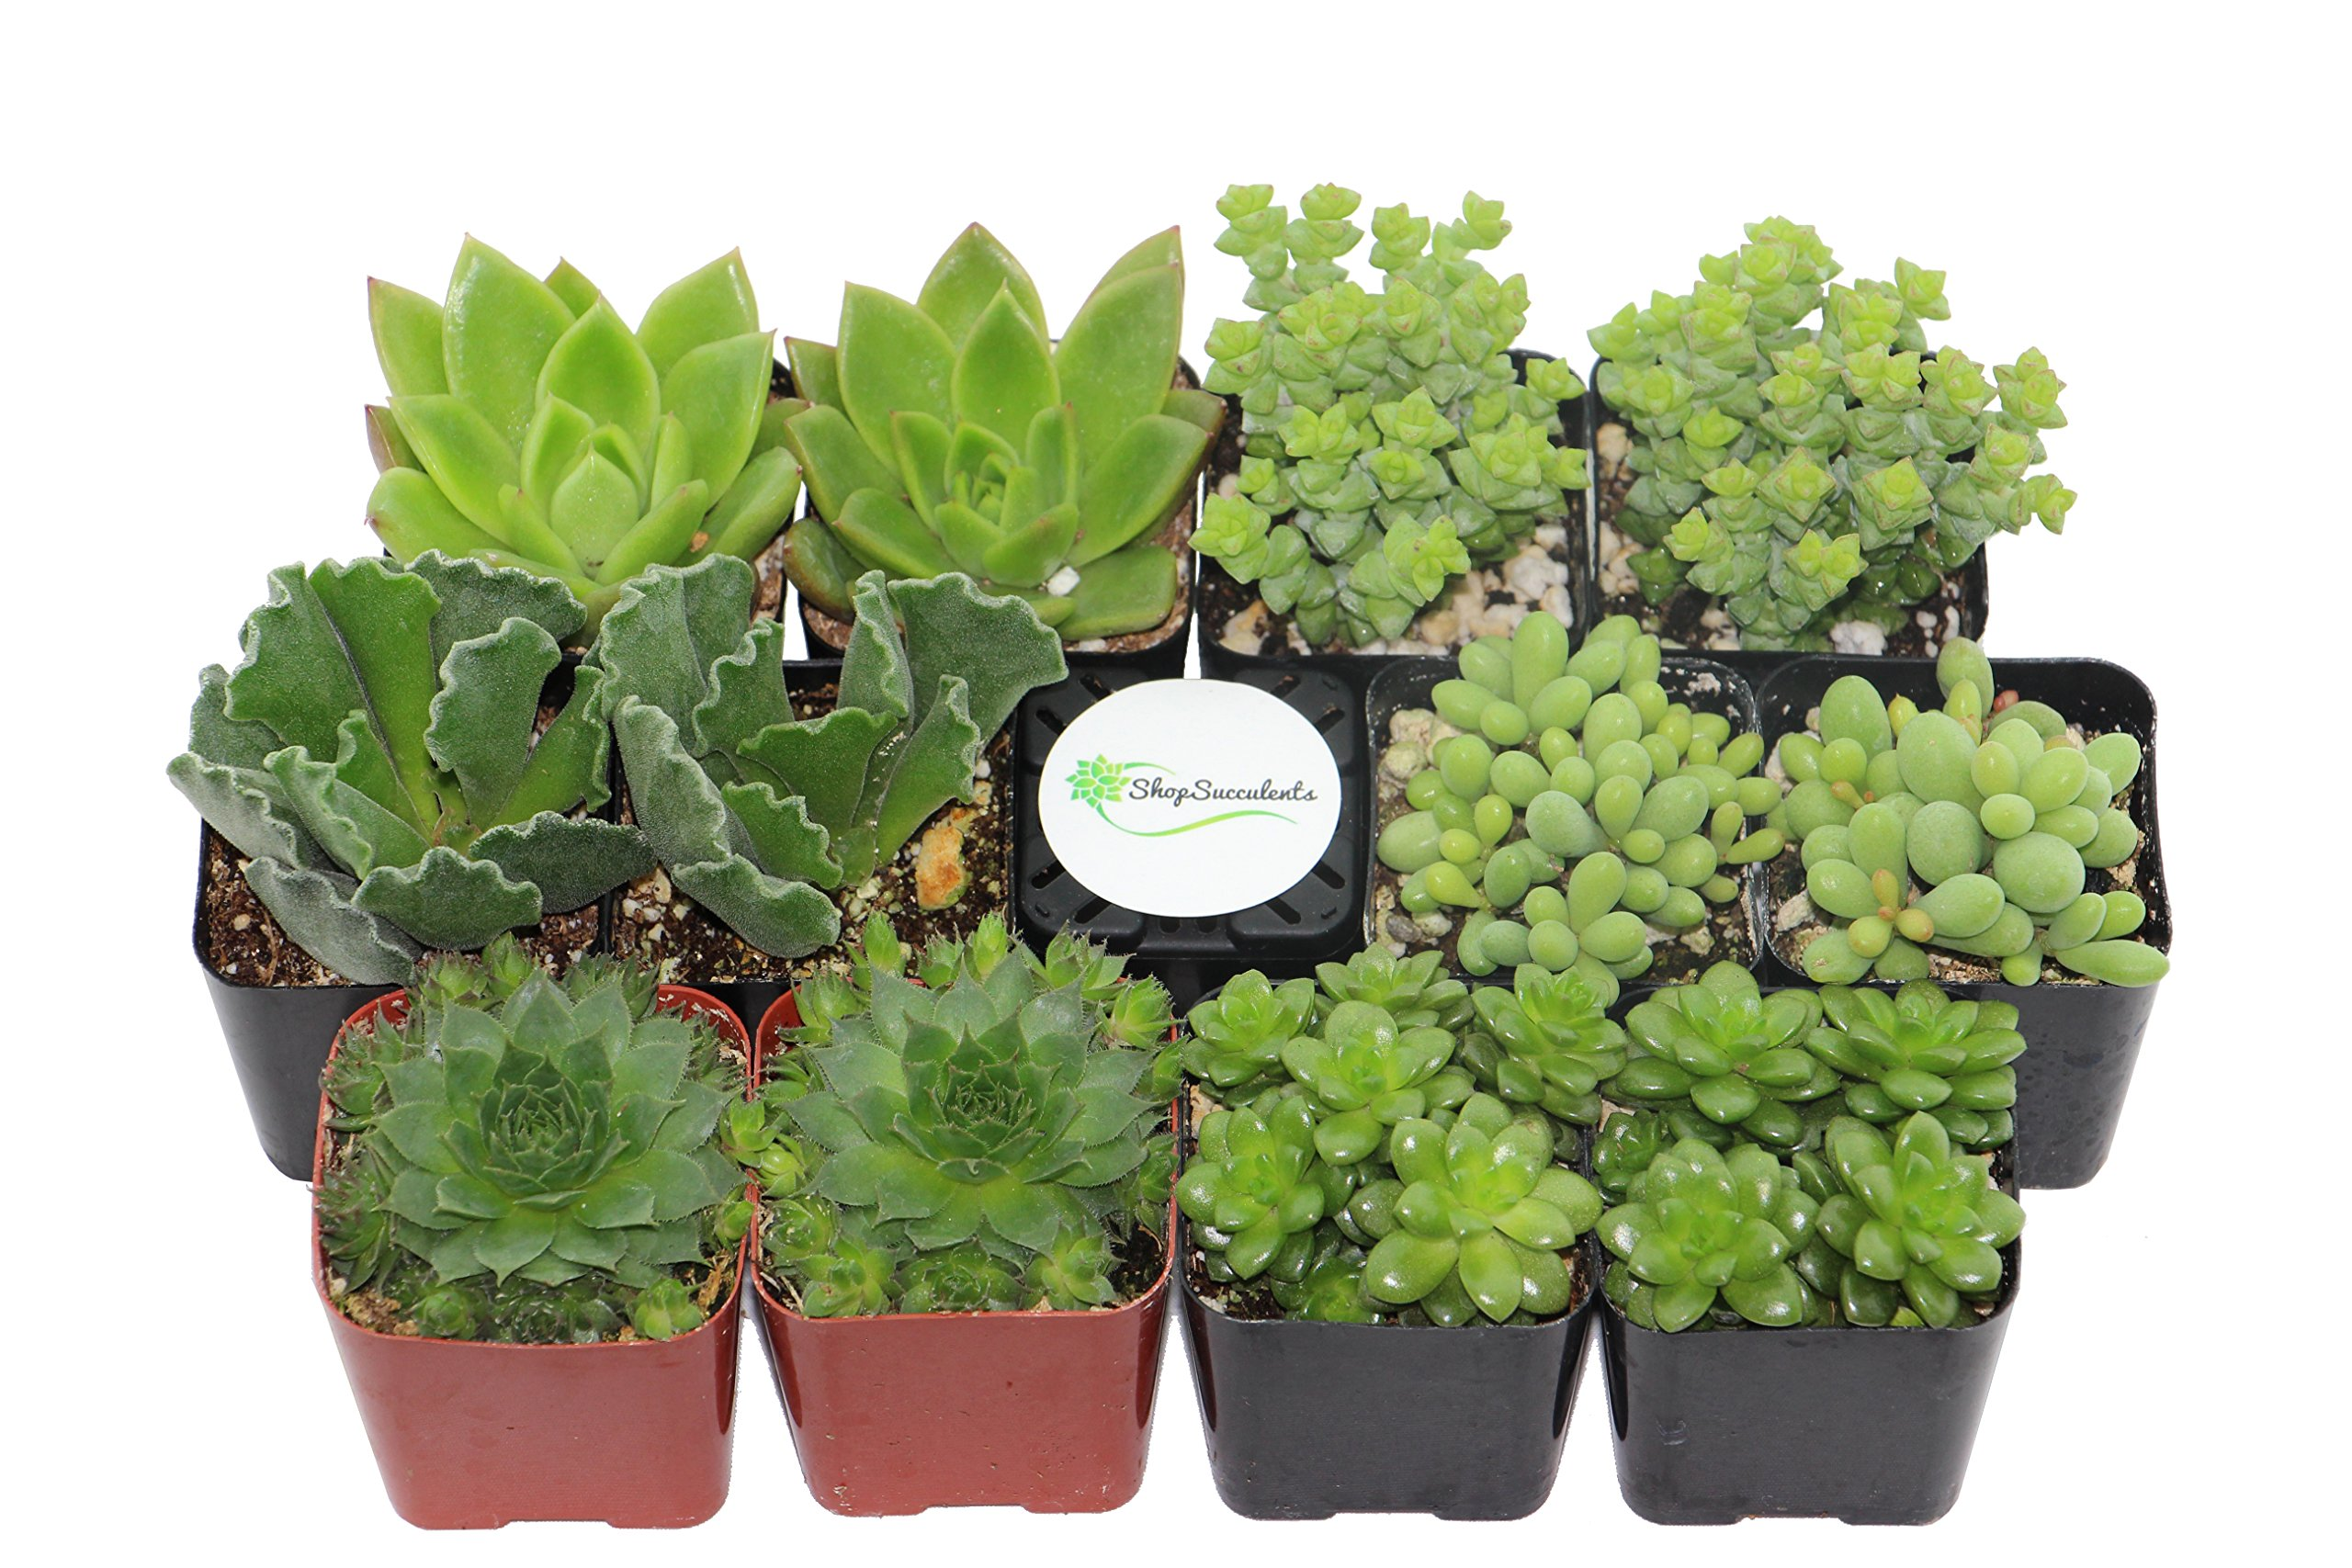 Shop Succulents | Green Live Plants, Hand Selected Variety Pack of Mini Succulents | | Collection of 12 in 2'' pots, Pack of 12 by Shop Succulents (Image #2)